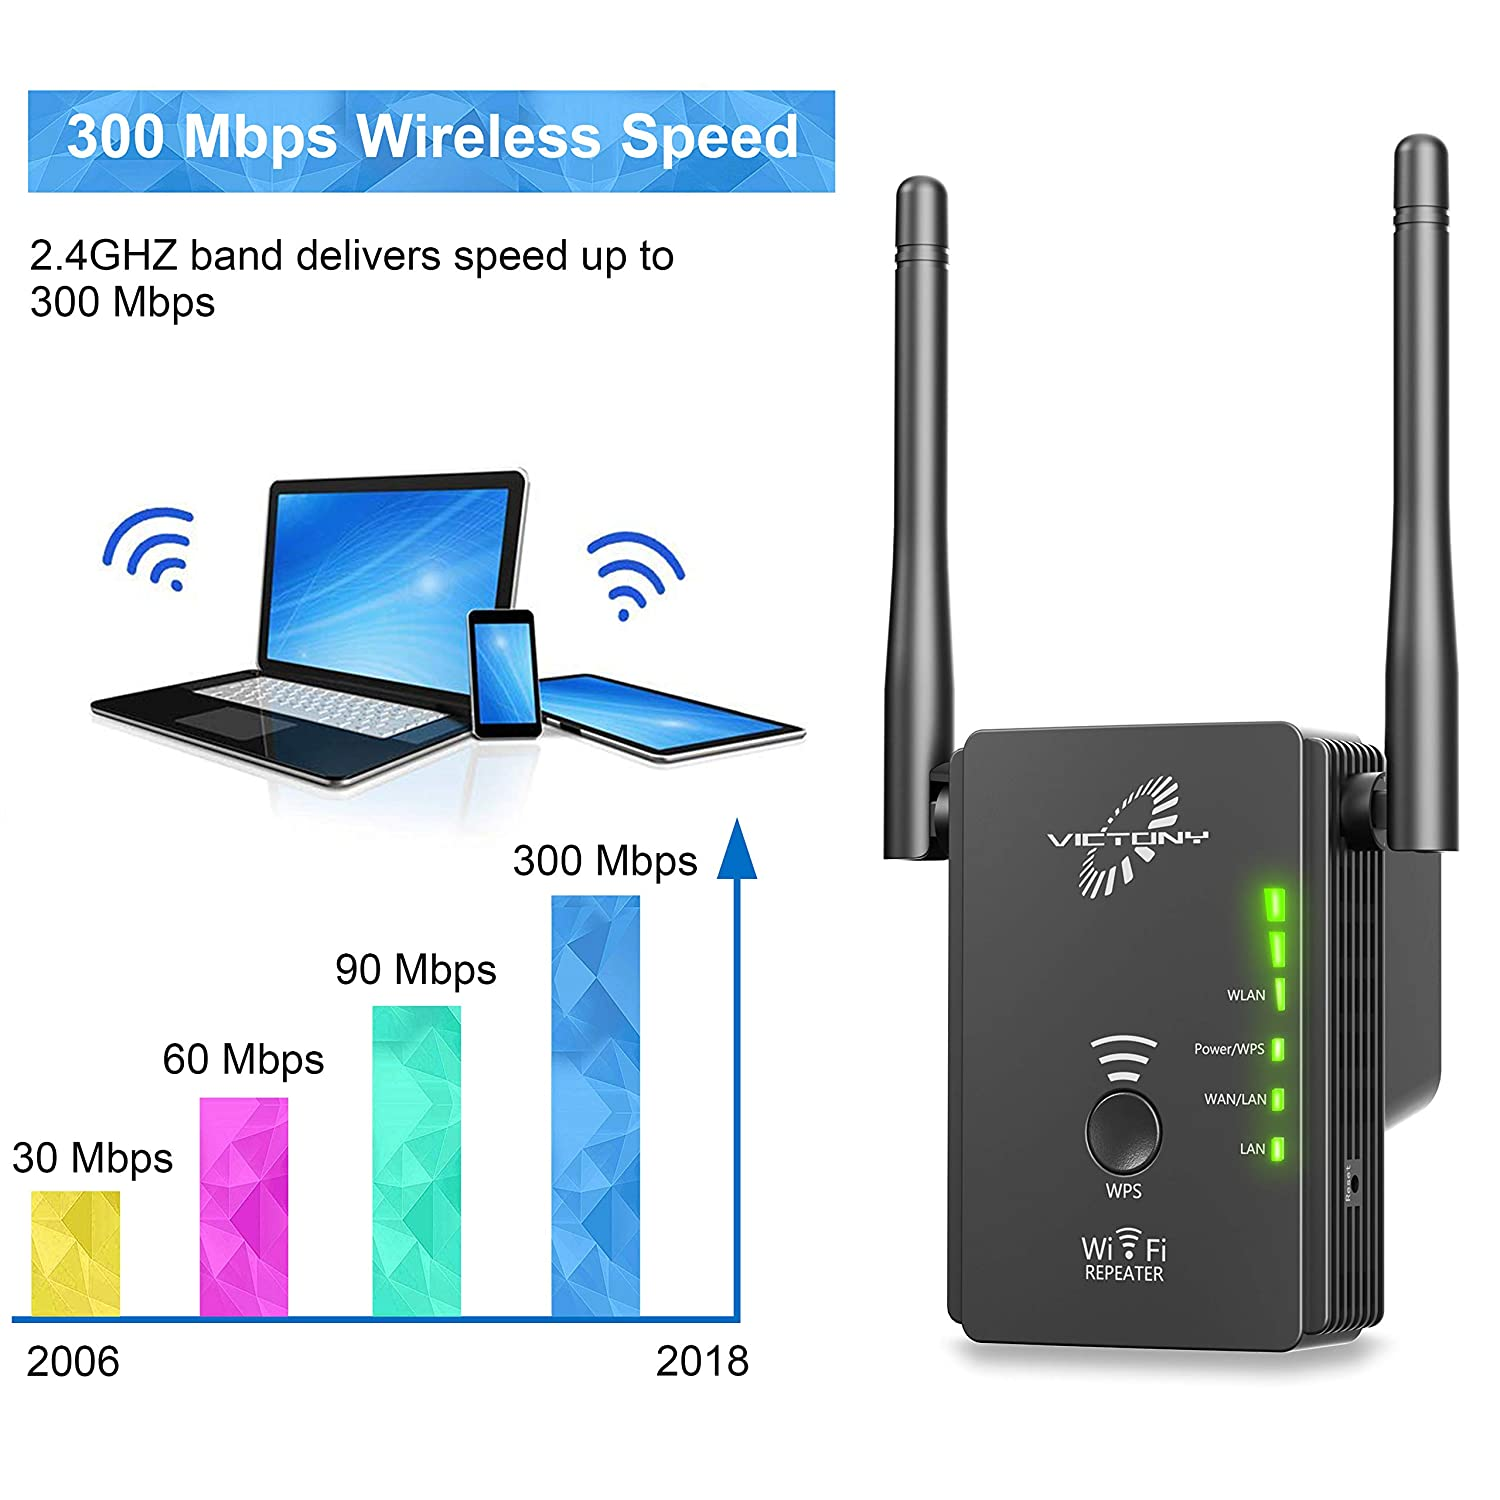 Supports Repeater//Access Point//Router Mode VICTONY WiFi Ranger Extender with High Gain Dual Band Antennas Wireless Network Extender 2.4GHz Speed up to 300Mbs WiFi Repeater